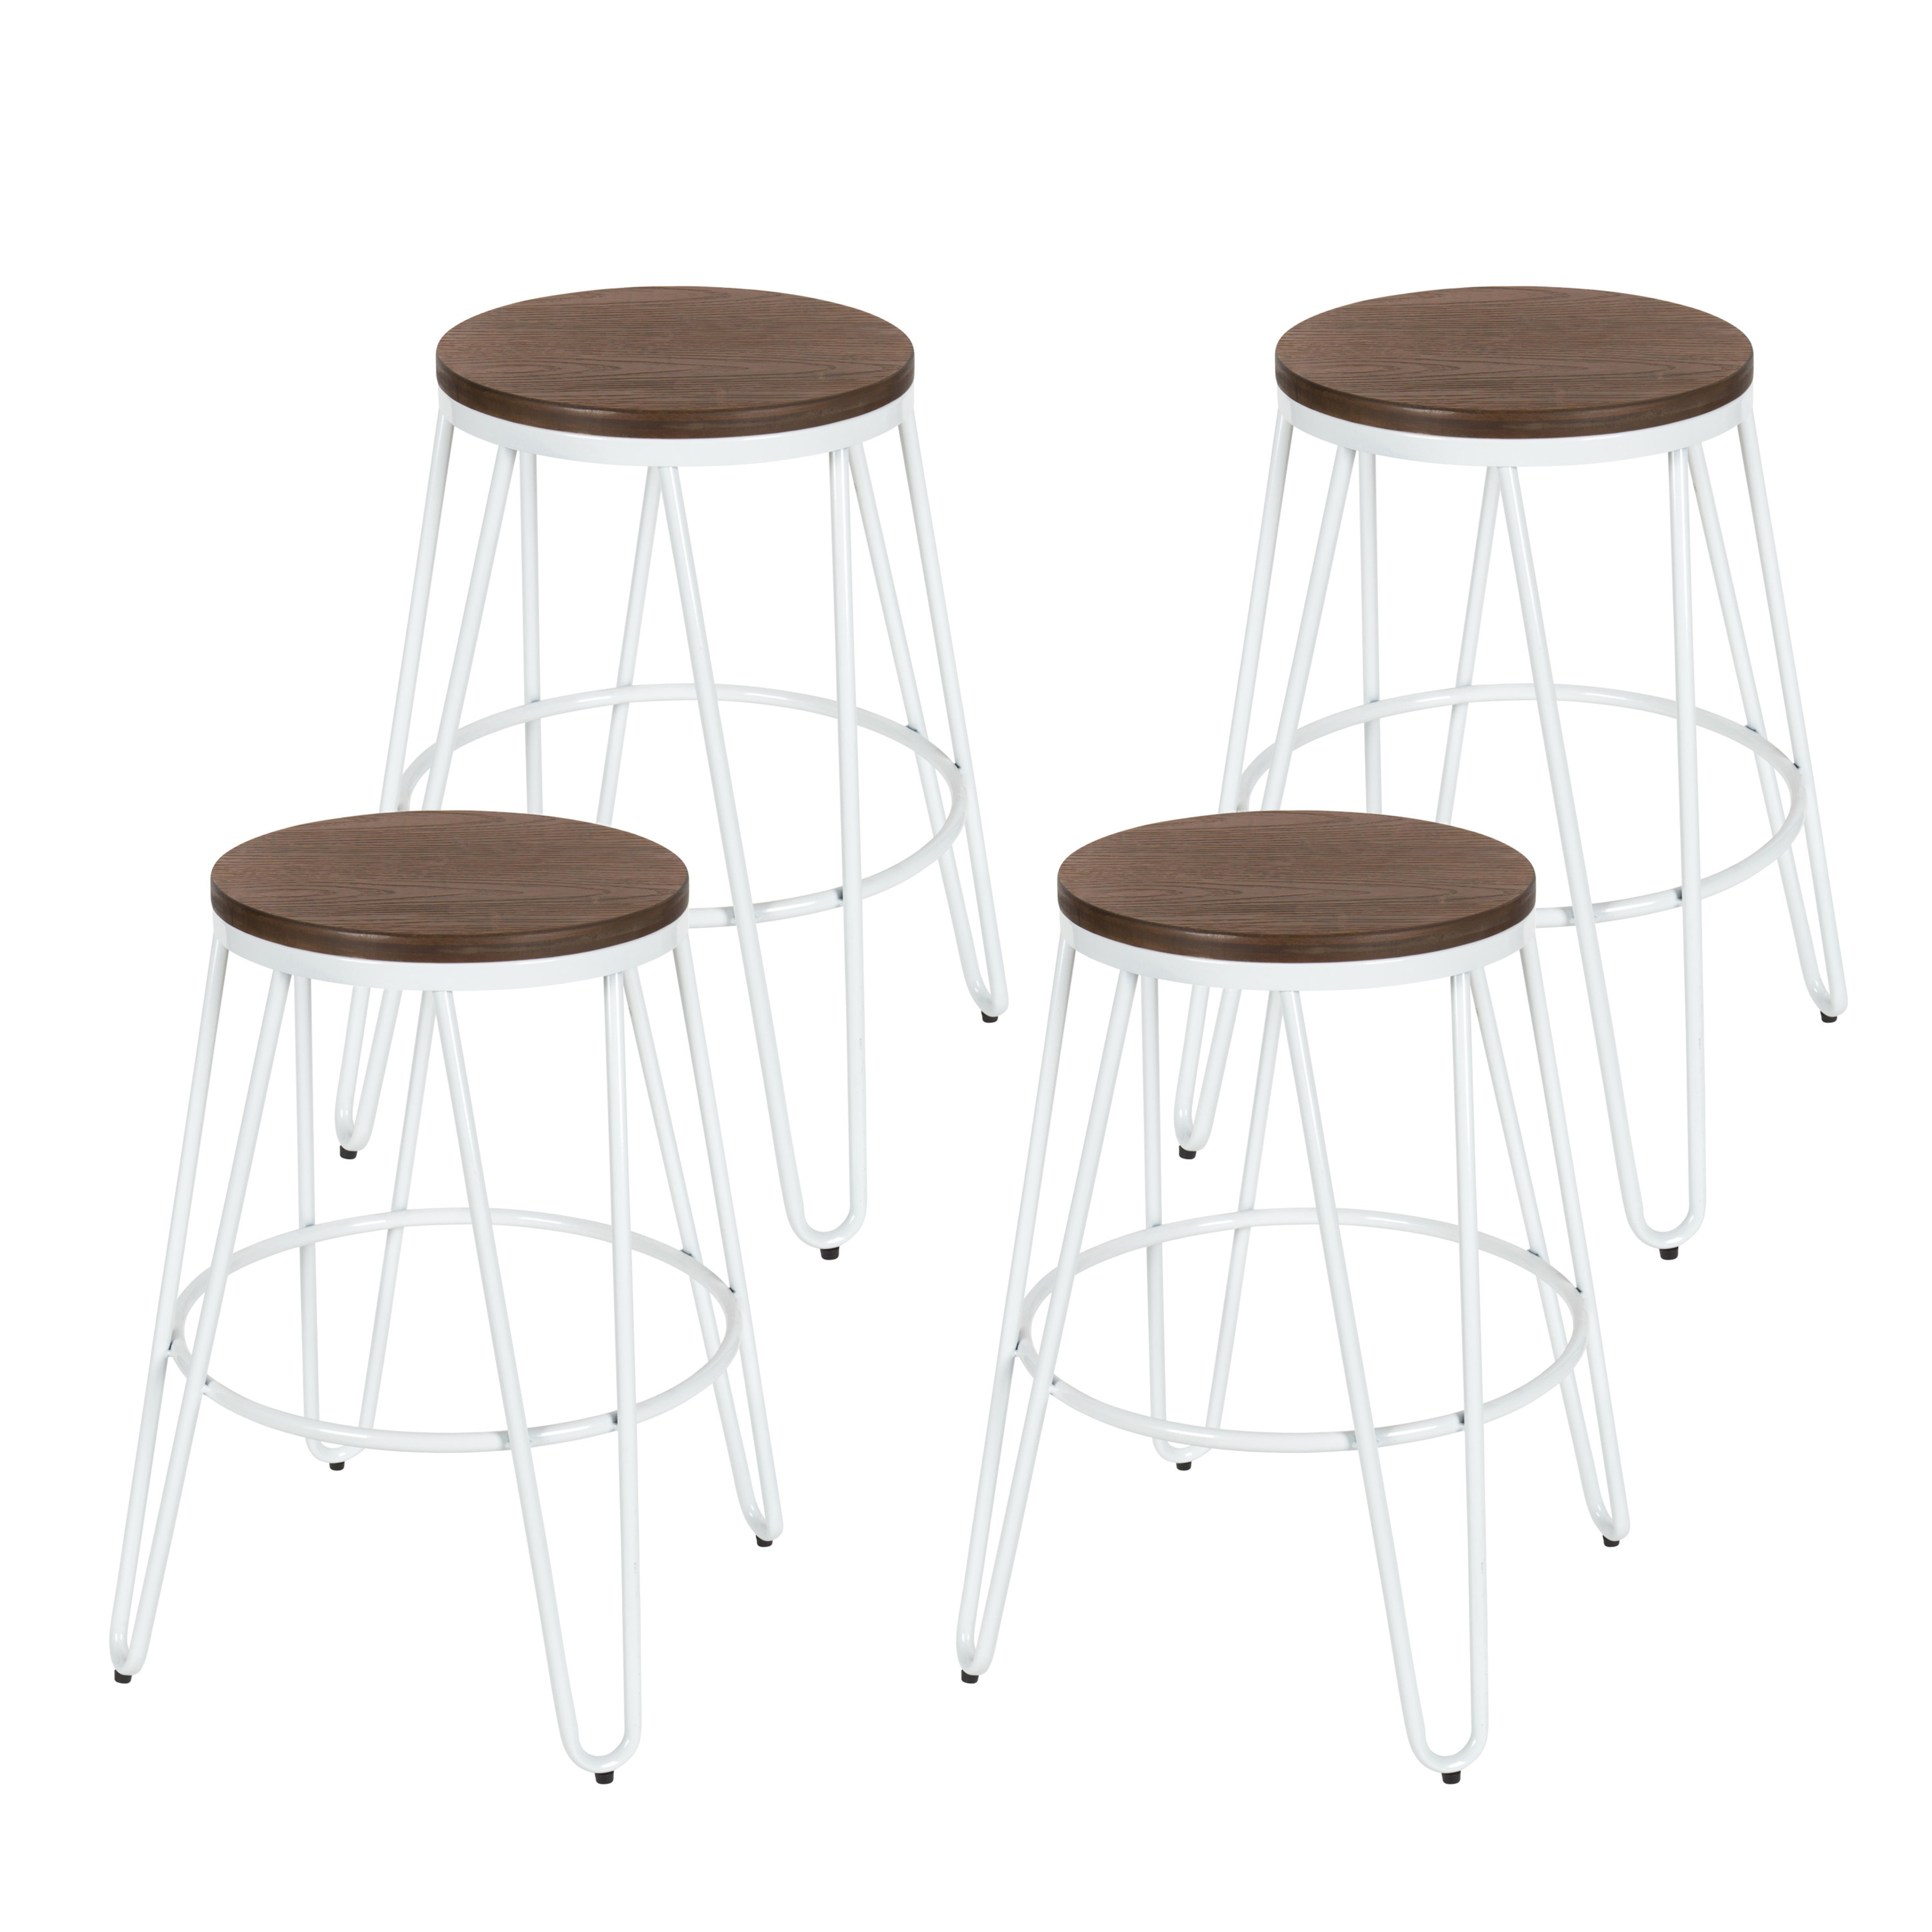 "Kate and Laurel Tully Backless Modern Wood and Metal 24"" Counter Height Bar Stools, Set of 4, Gray with Wood Seat"